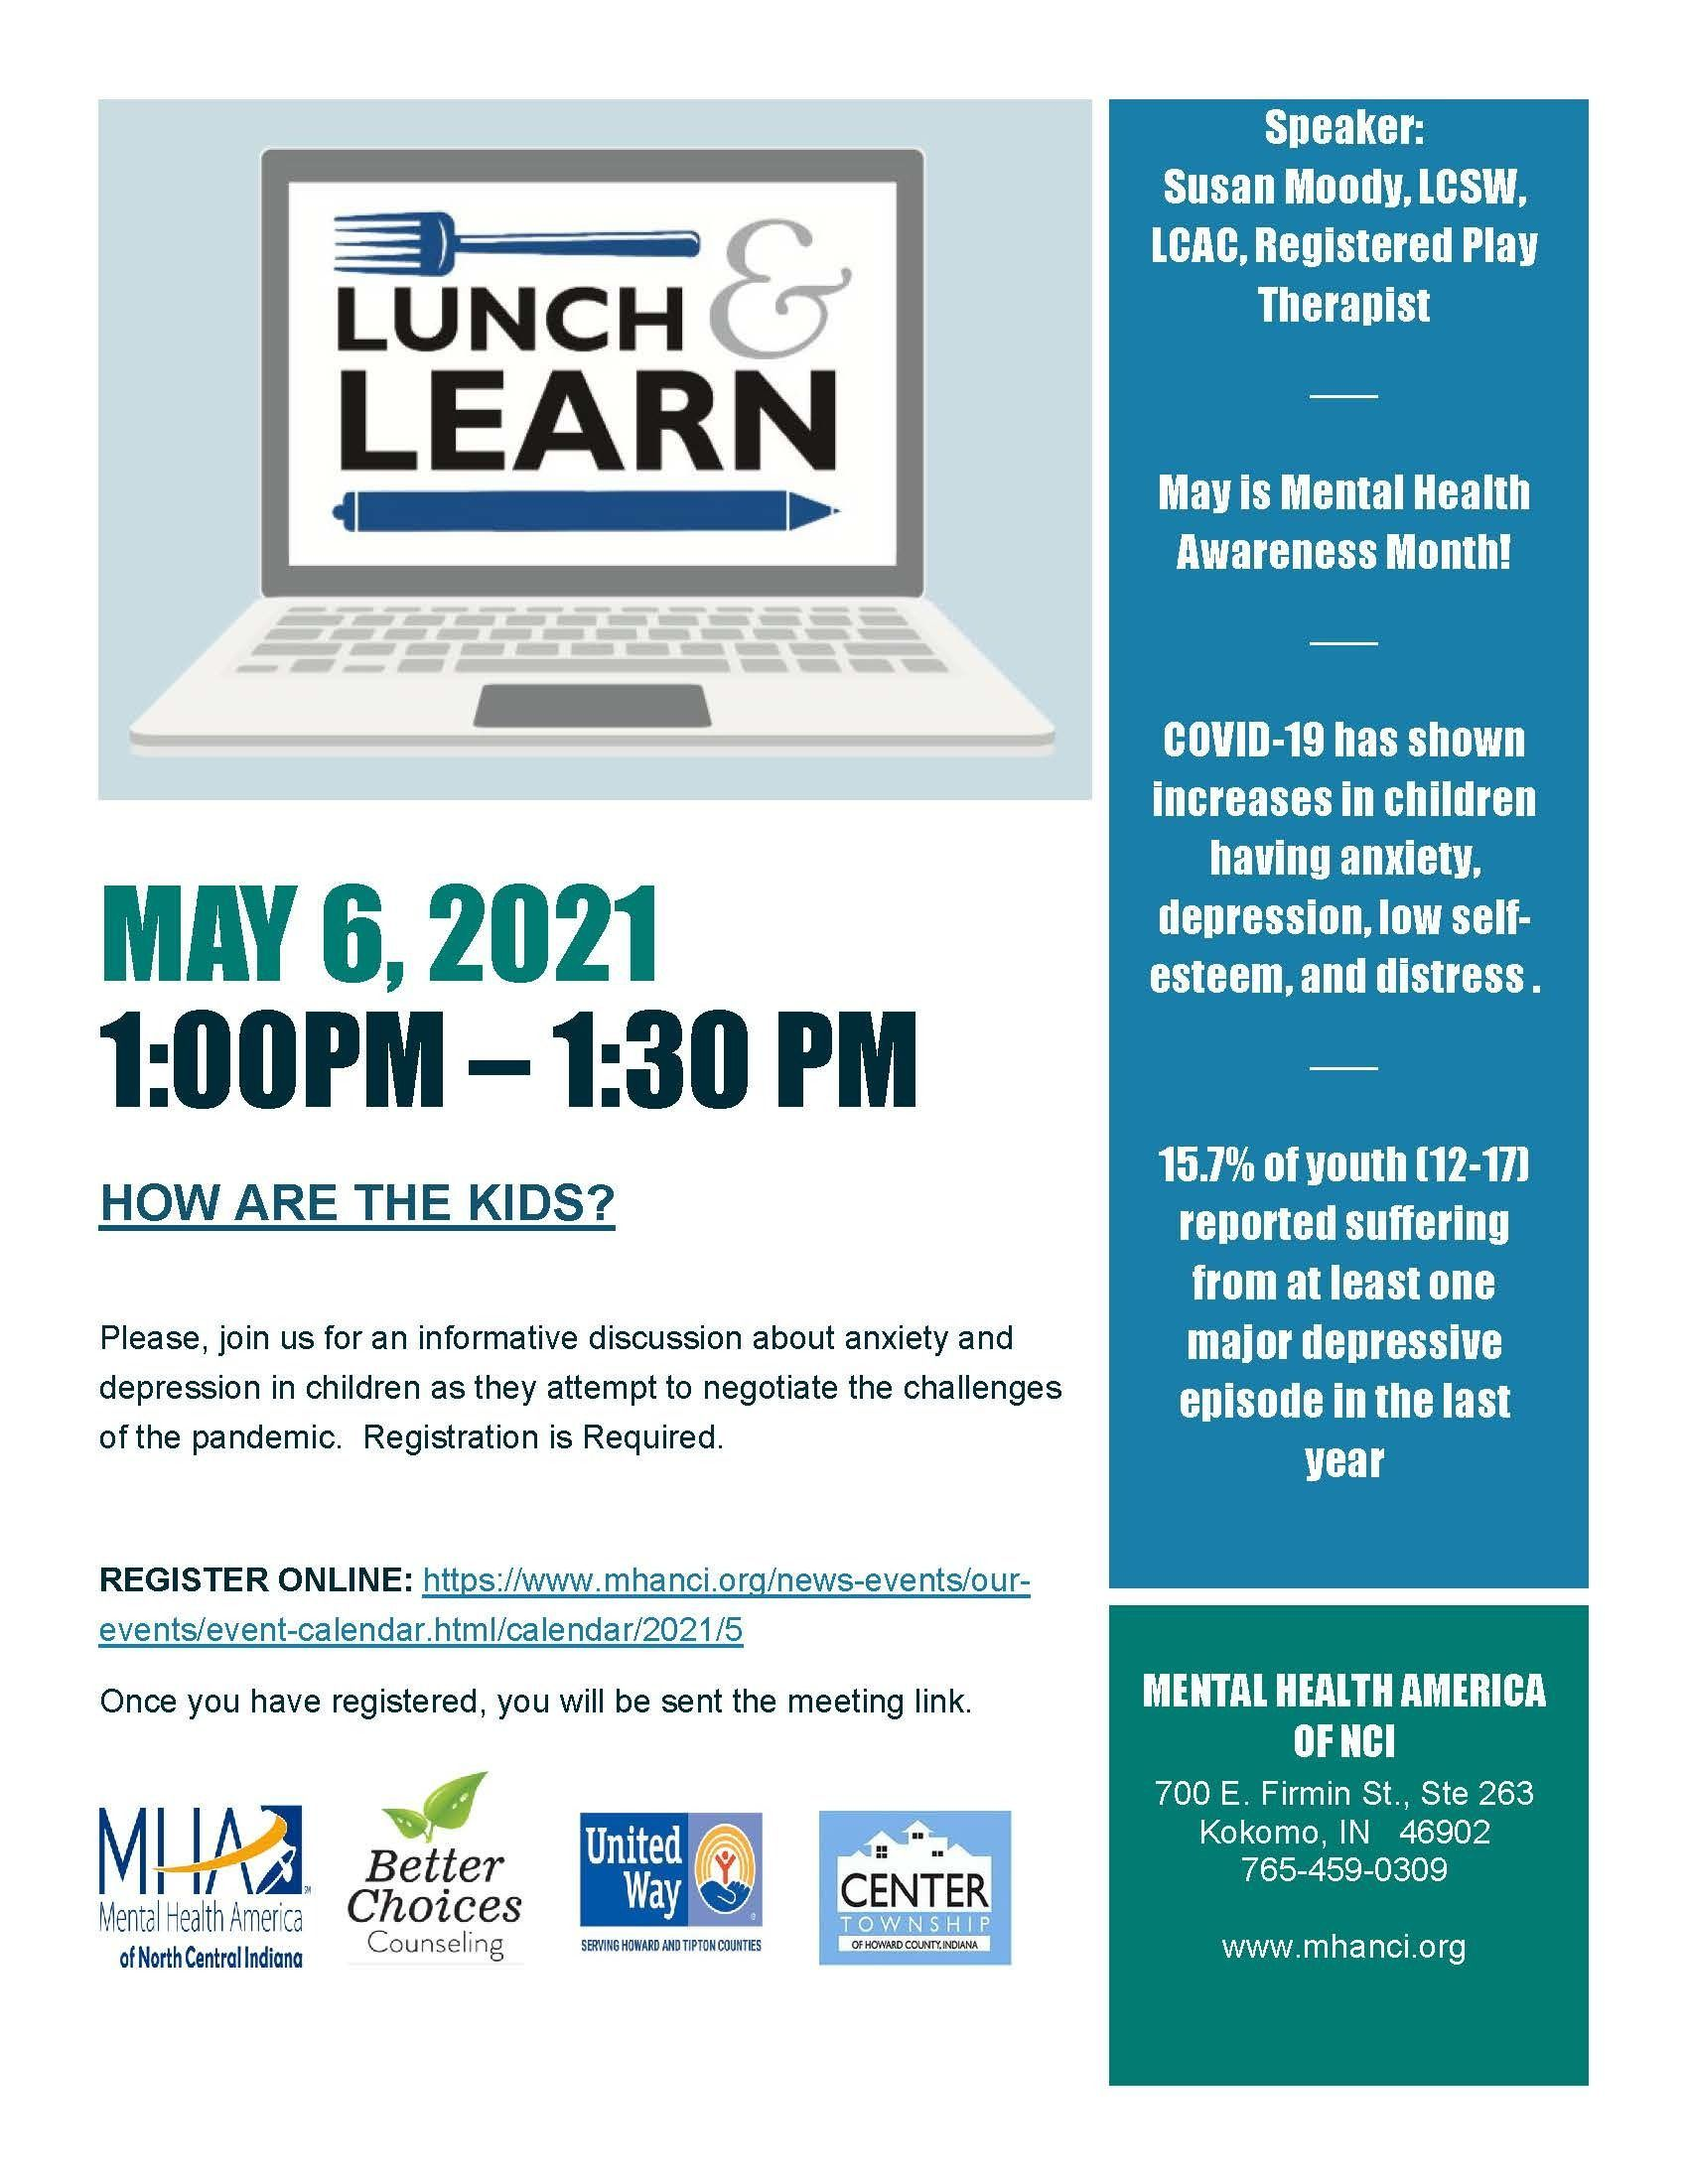 Virtual Lunch & Learn - HOW ARE THE KIDS?